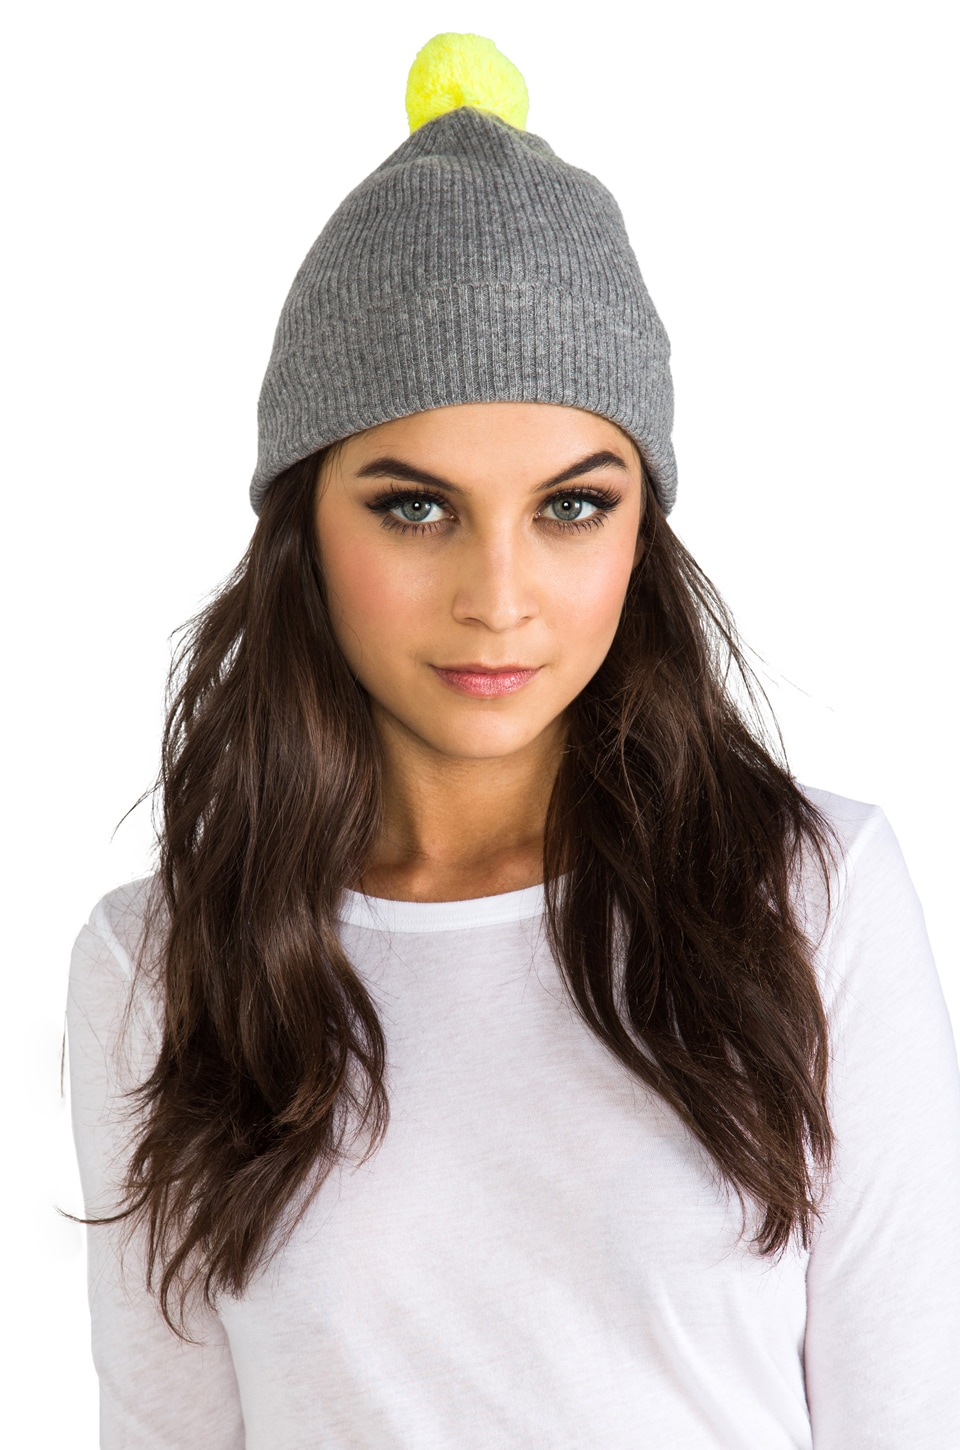 Autumn Cashmere 2 Tone Bag Hat With Pom Pom in Cement/Day Glo